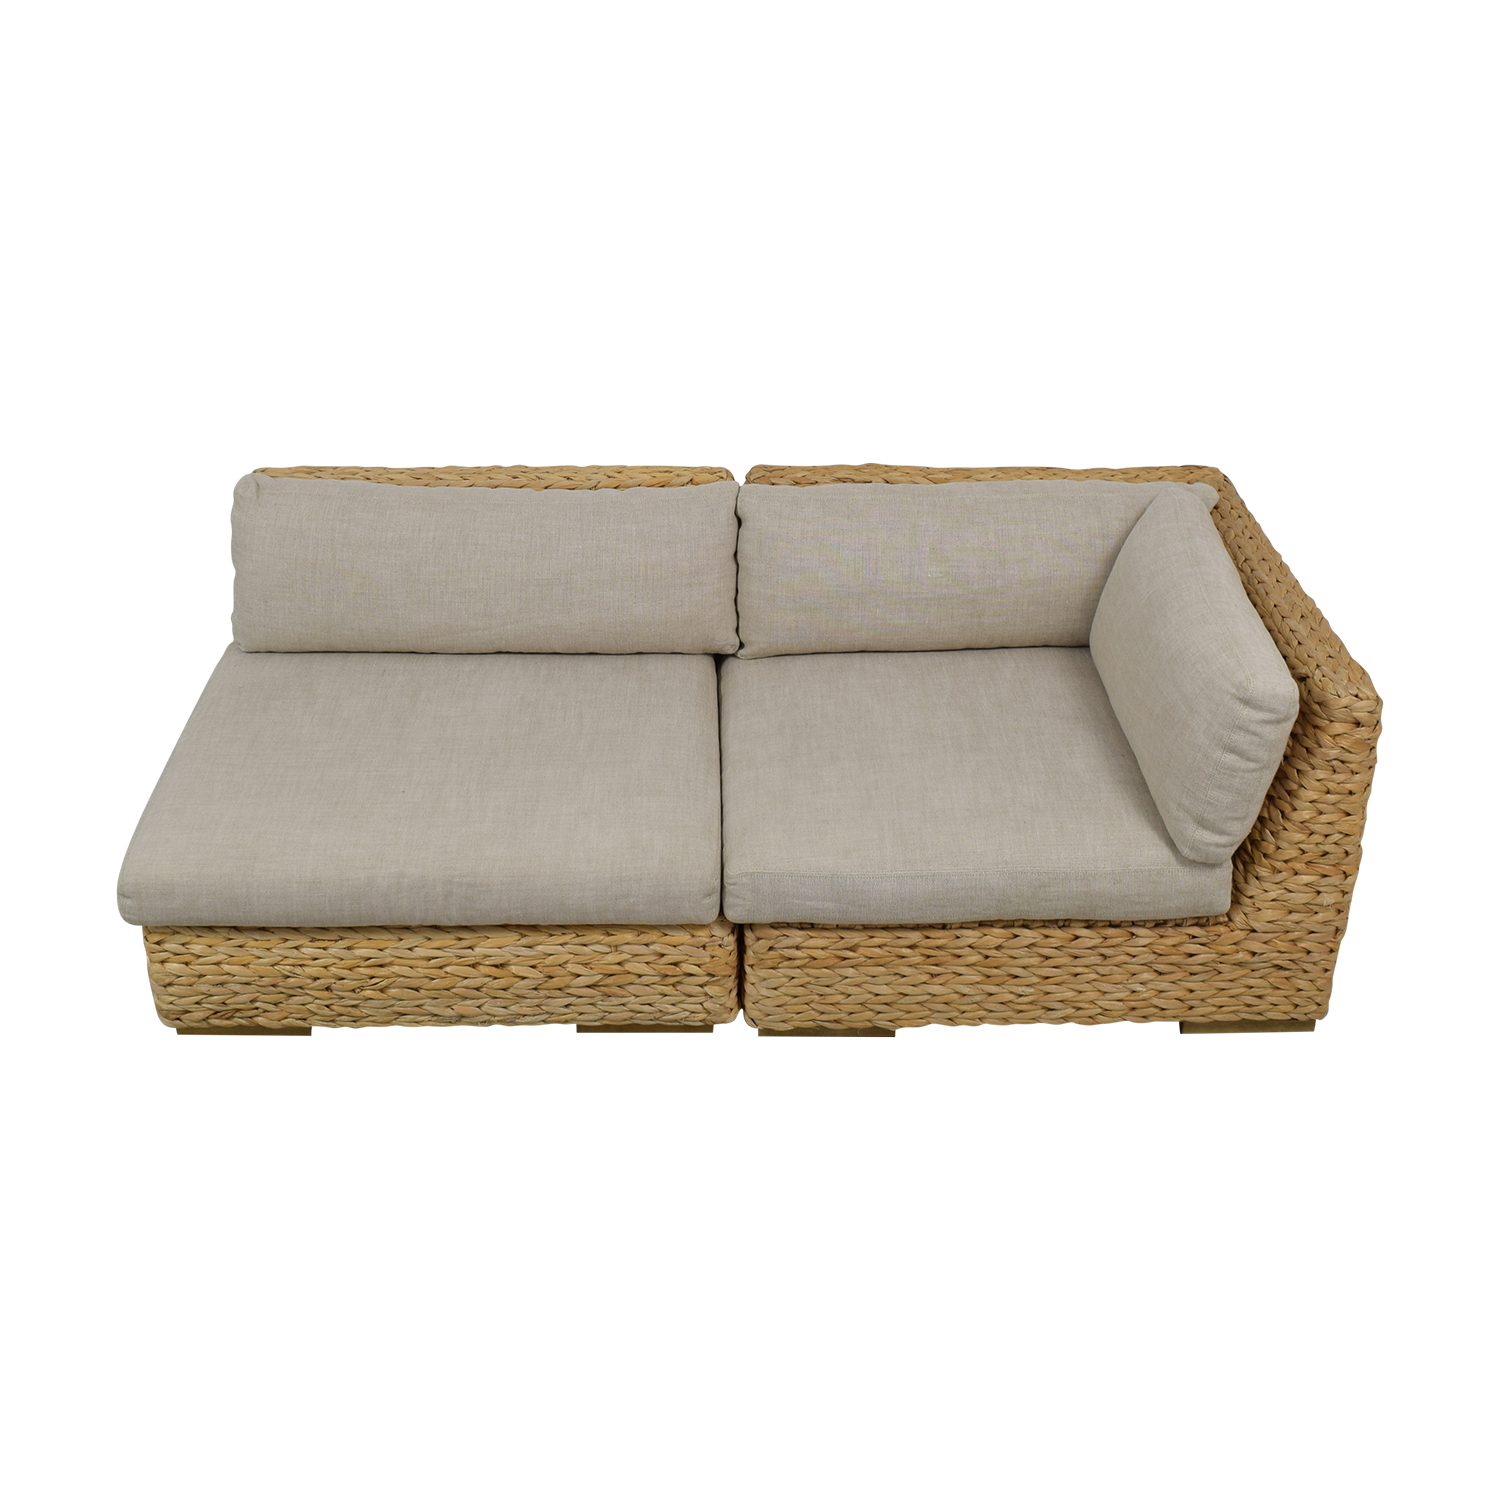 Restoration Hardware Restoration Hardware Beige and Grey Wicker Two-Piece Sectional nyc